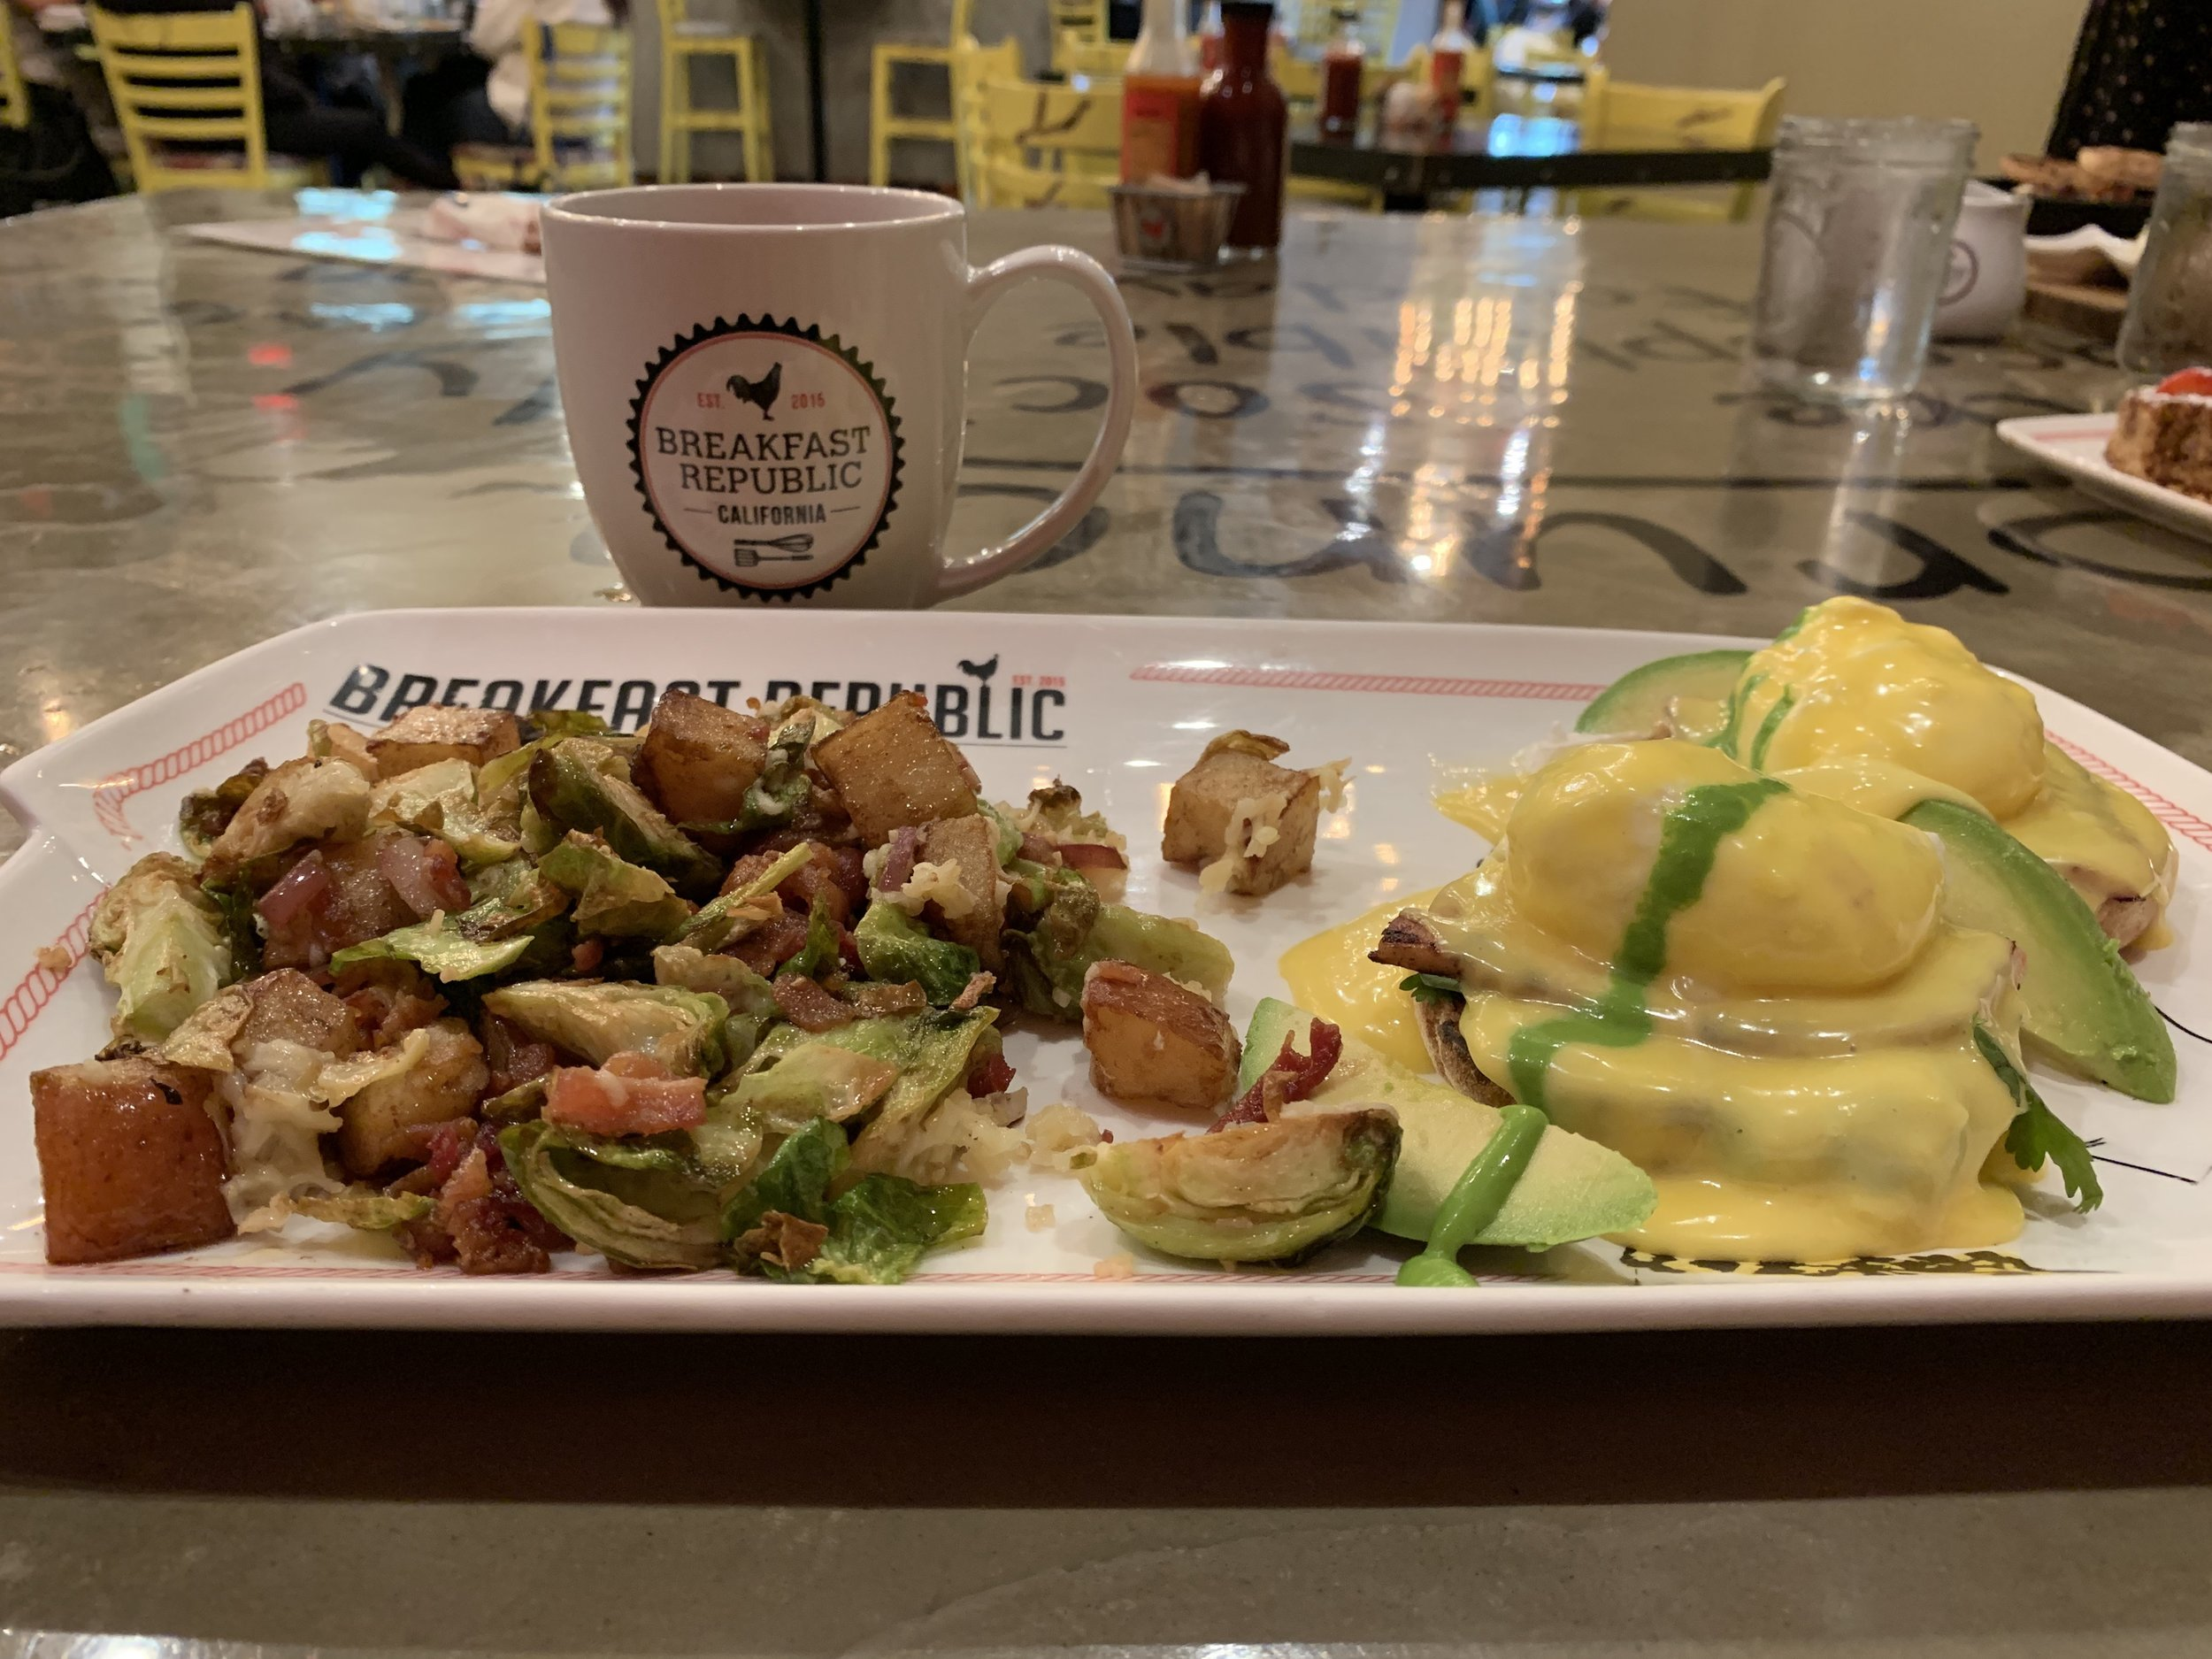 San Diego eggs Benedict: Breakfast republic brunch, the best eggs Benedict